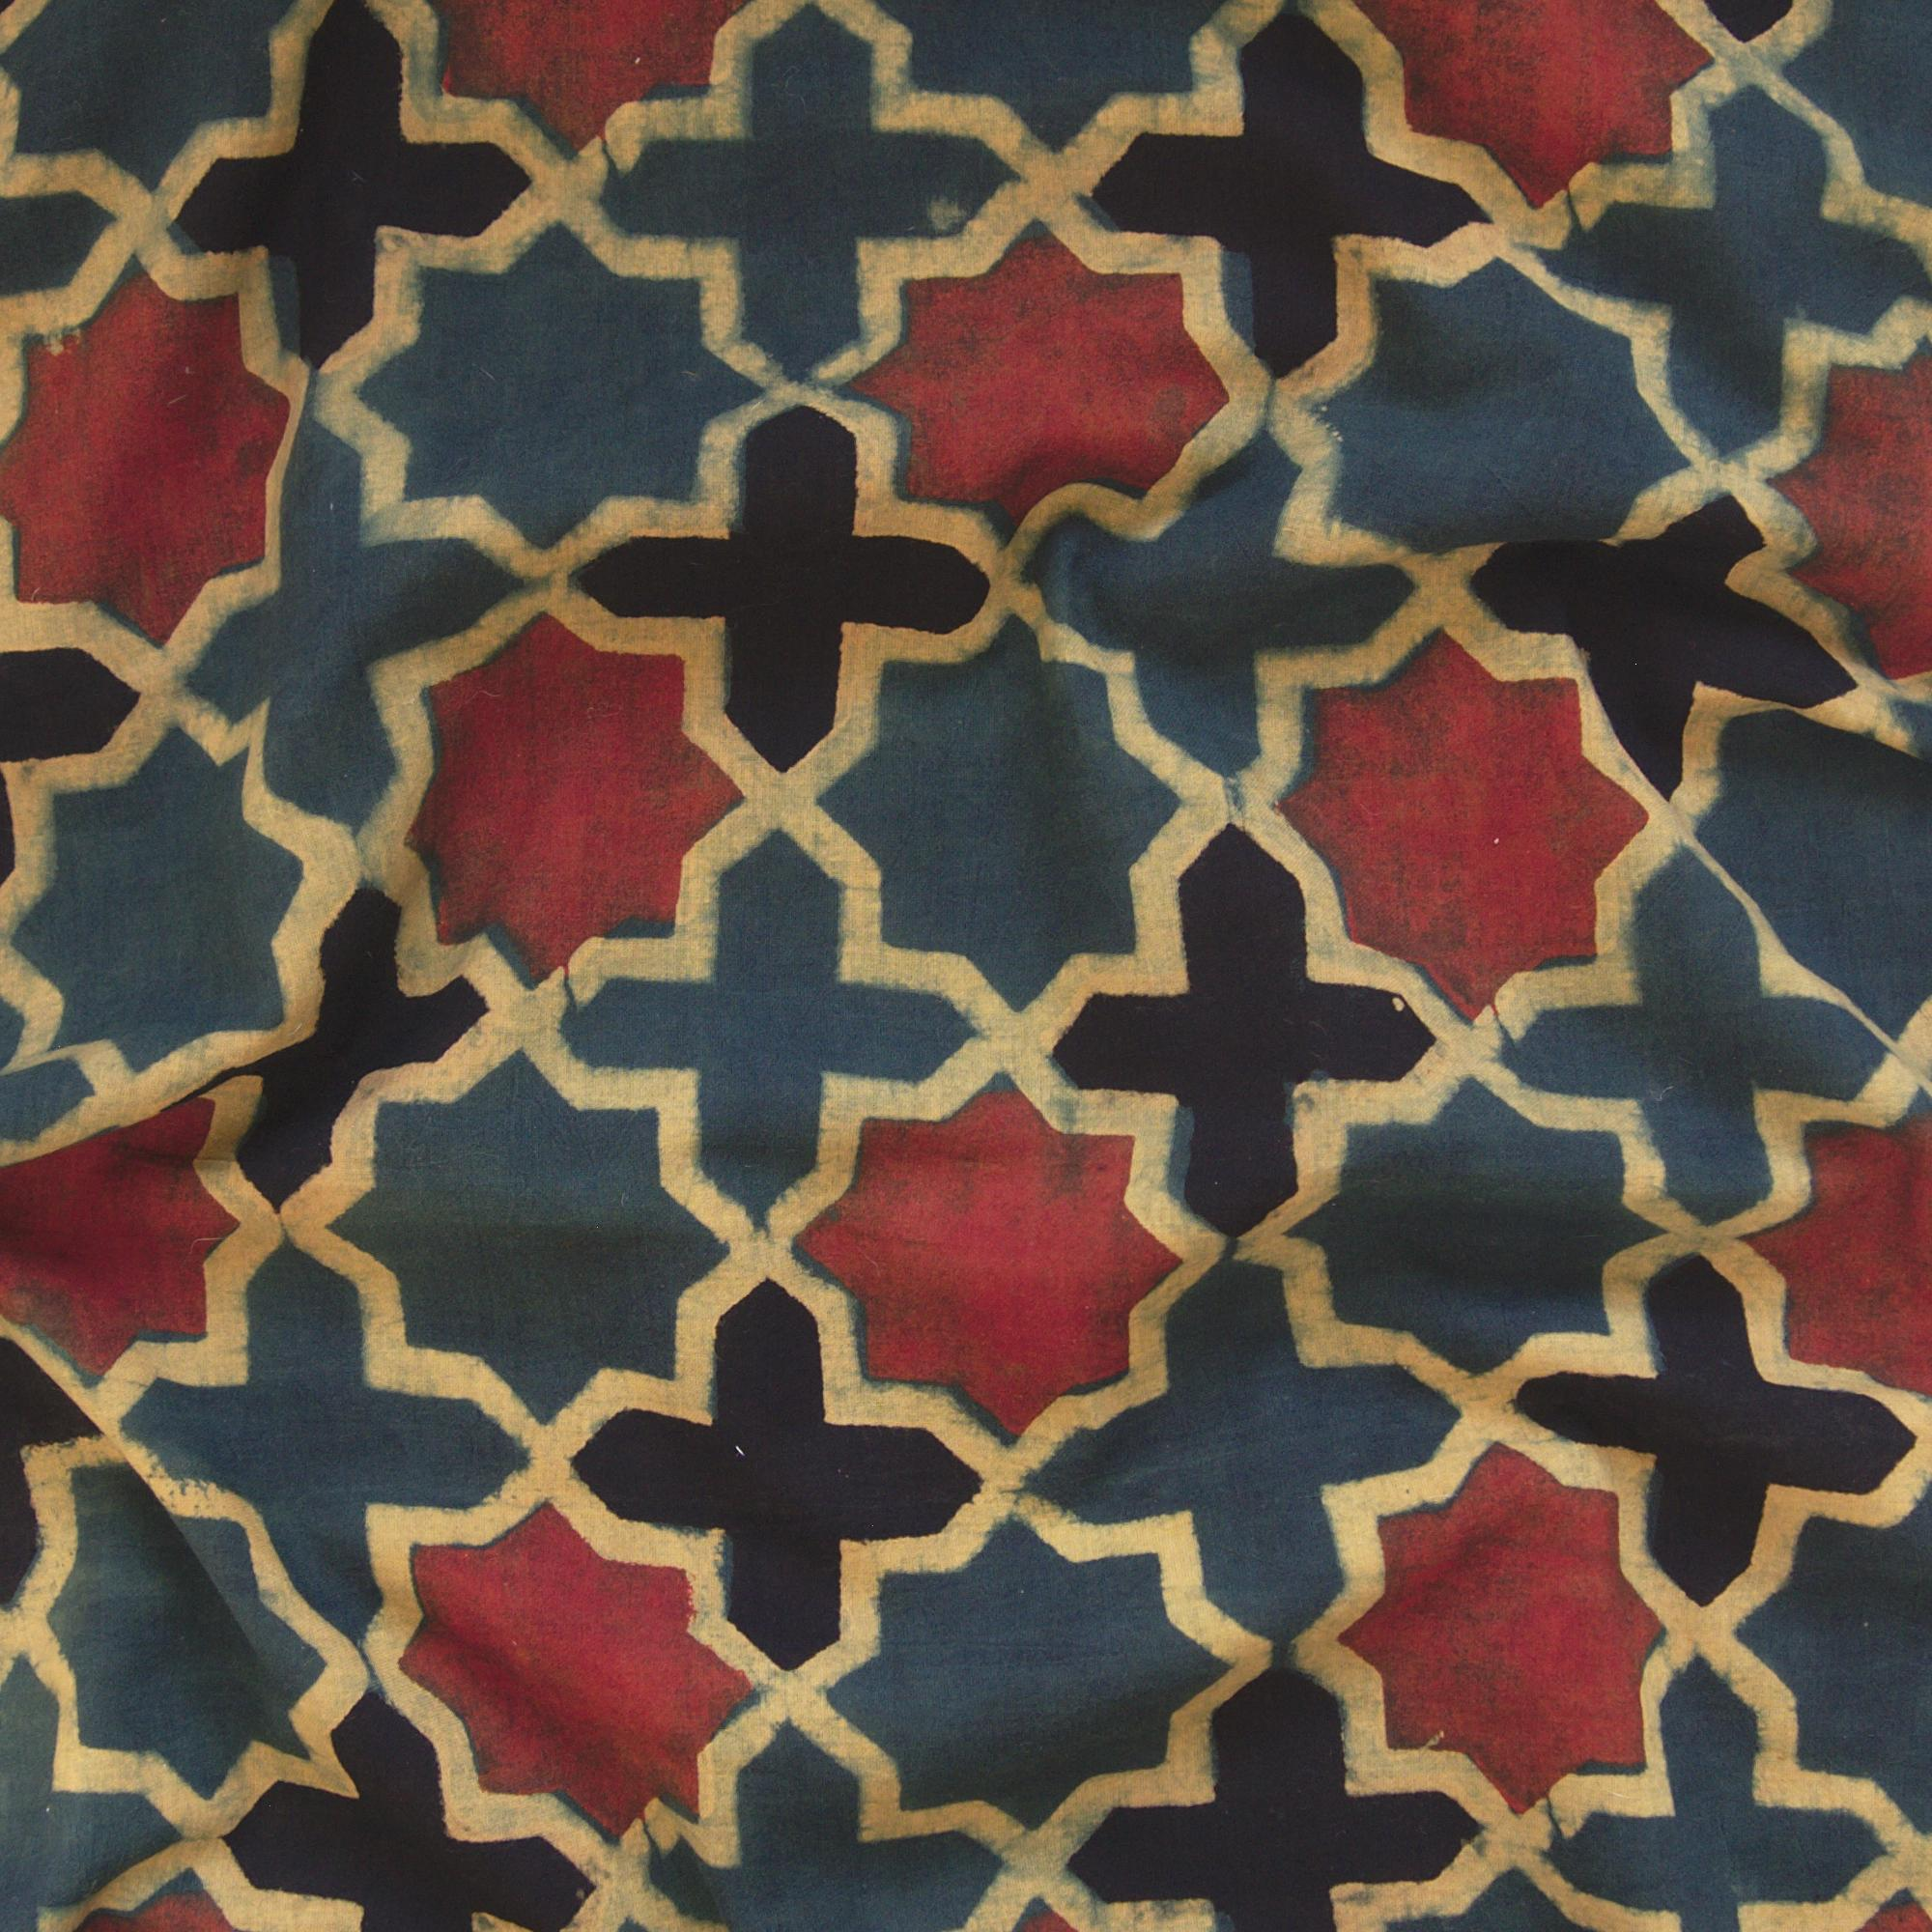 Block Printed Fabric, 100% Cotton, Ajrak Design: Green Base, Black, Yellow, Red Cross. Contrast